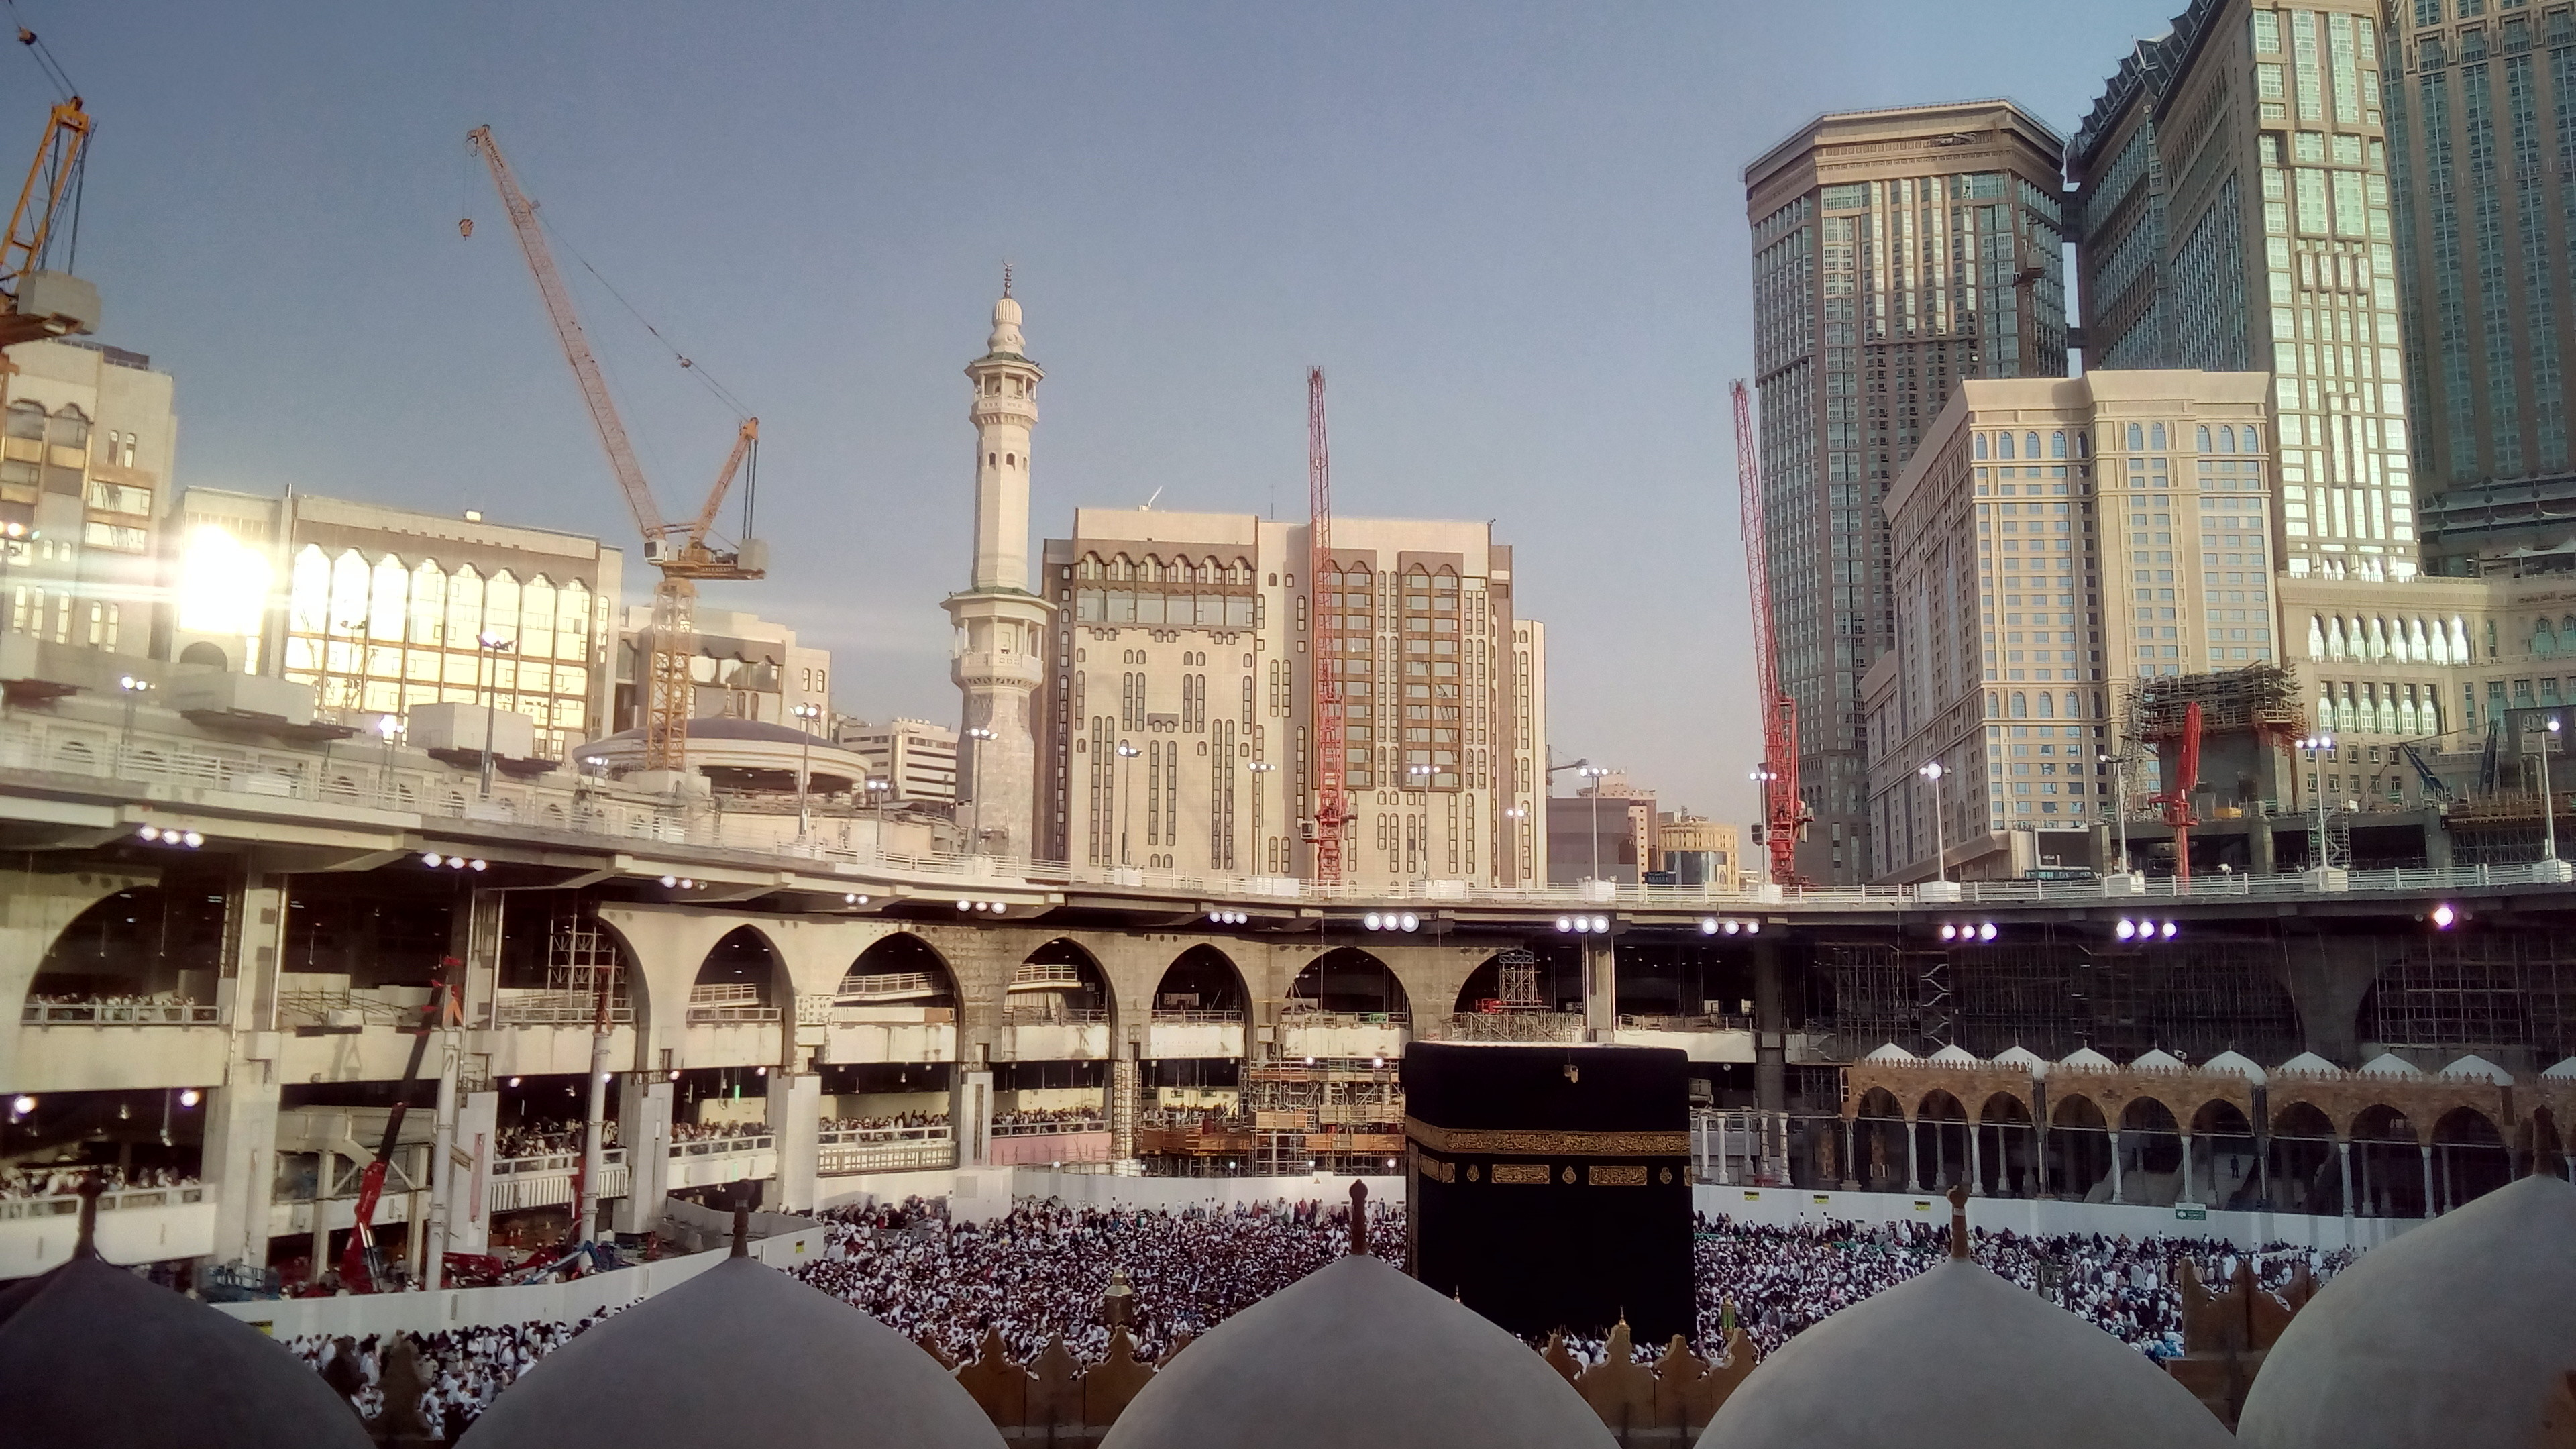 Makkah Pictures Full Size – Billy Knight